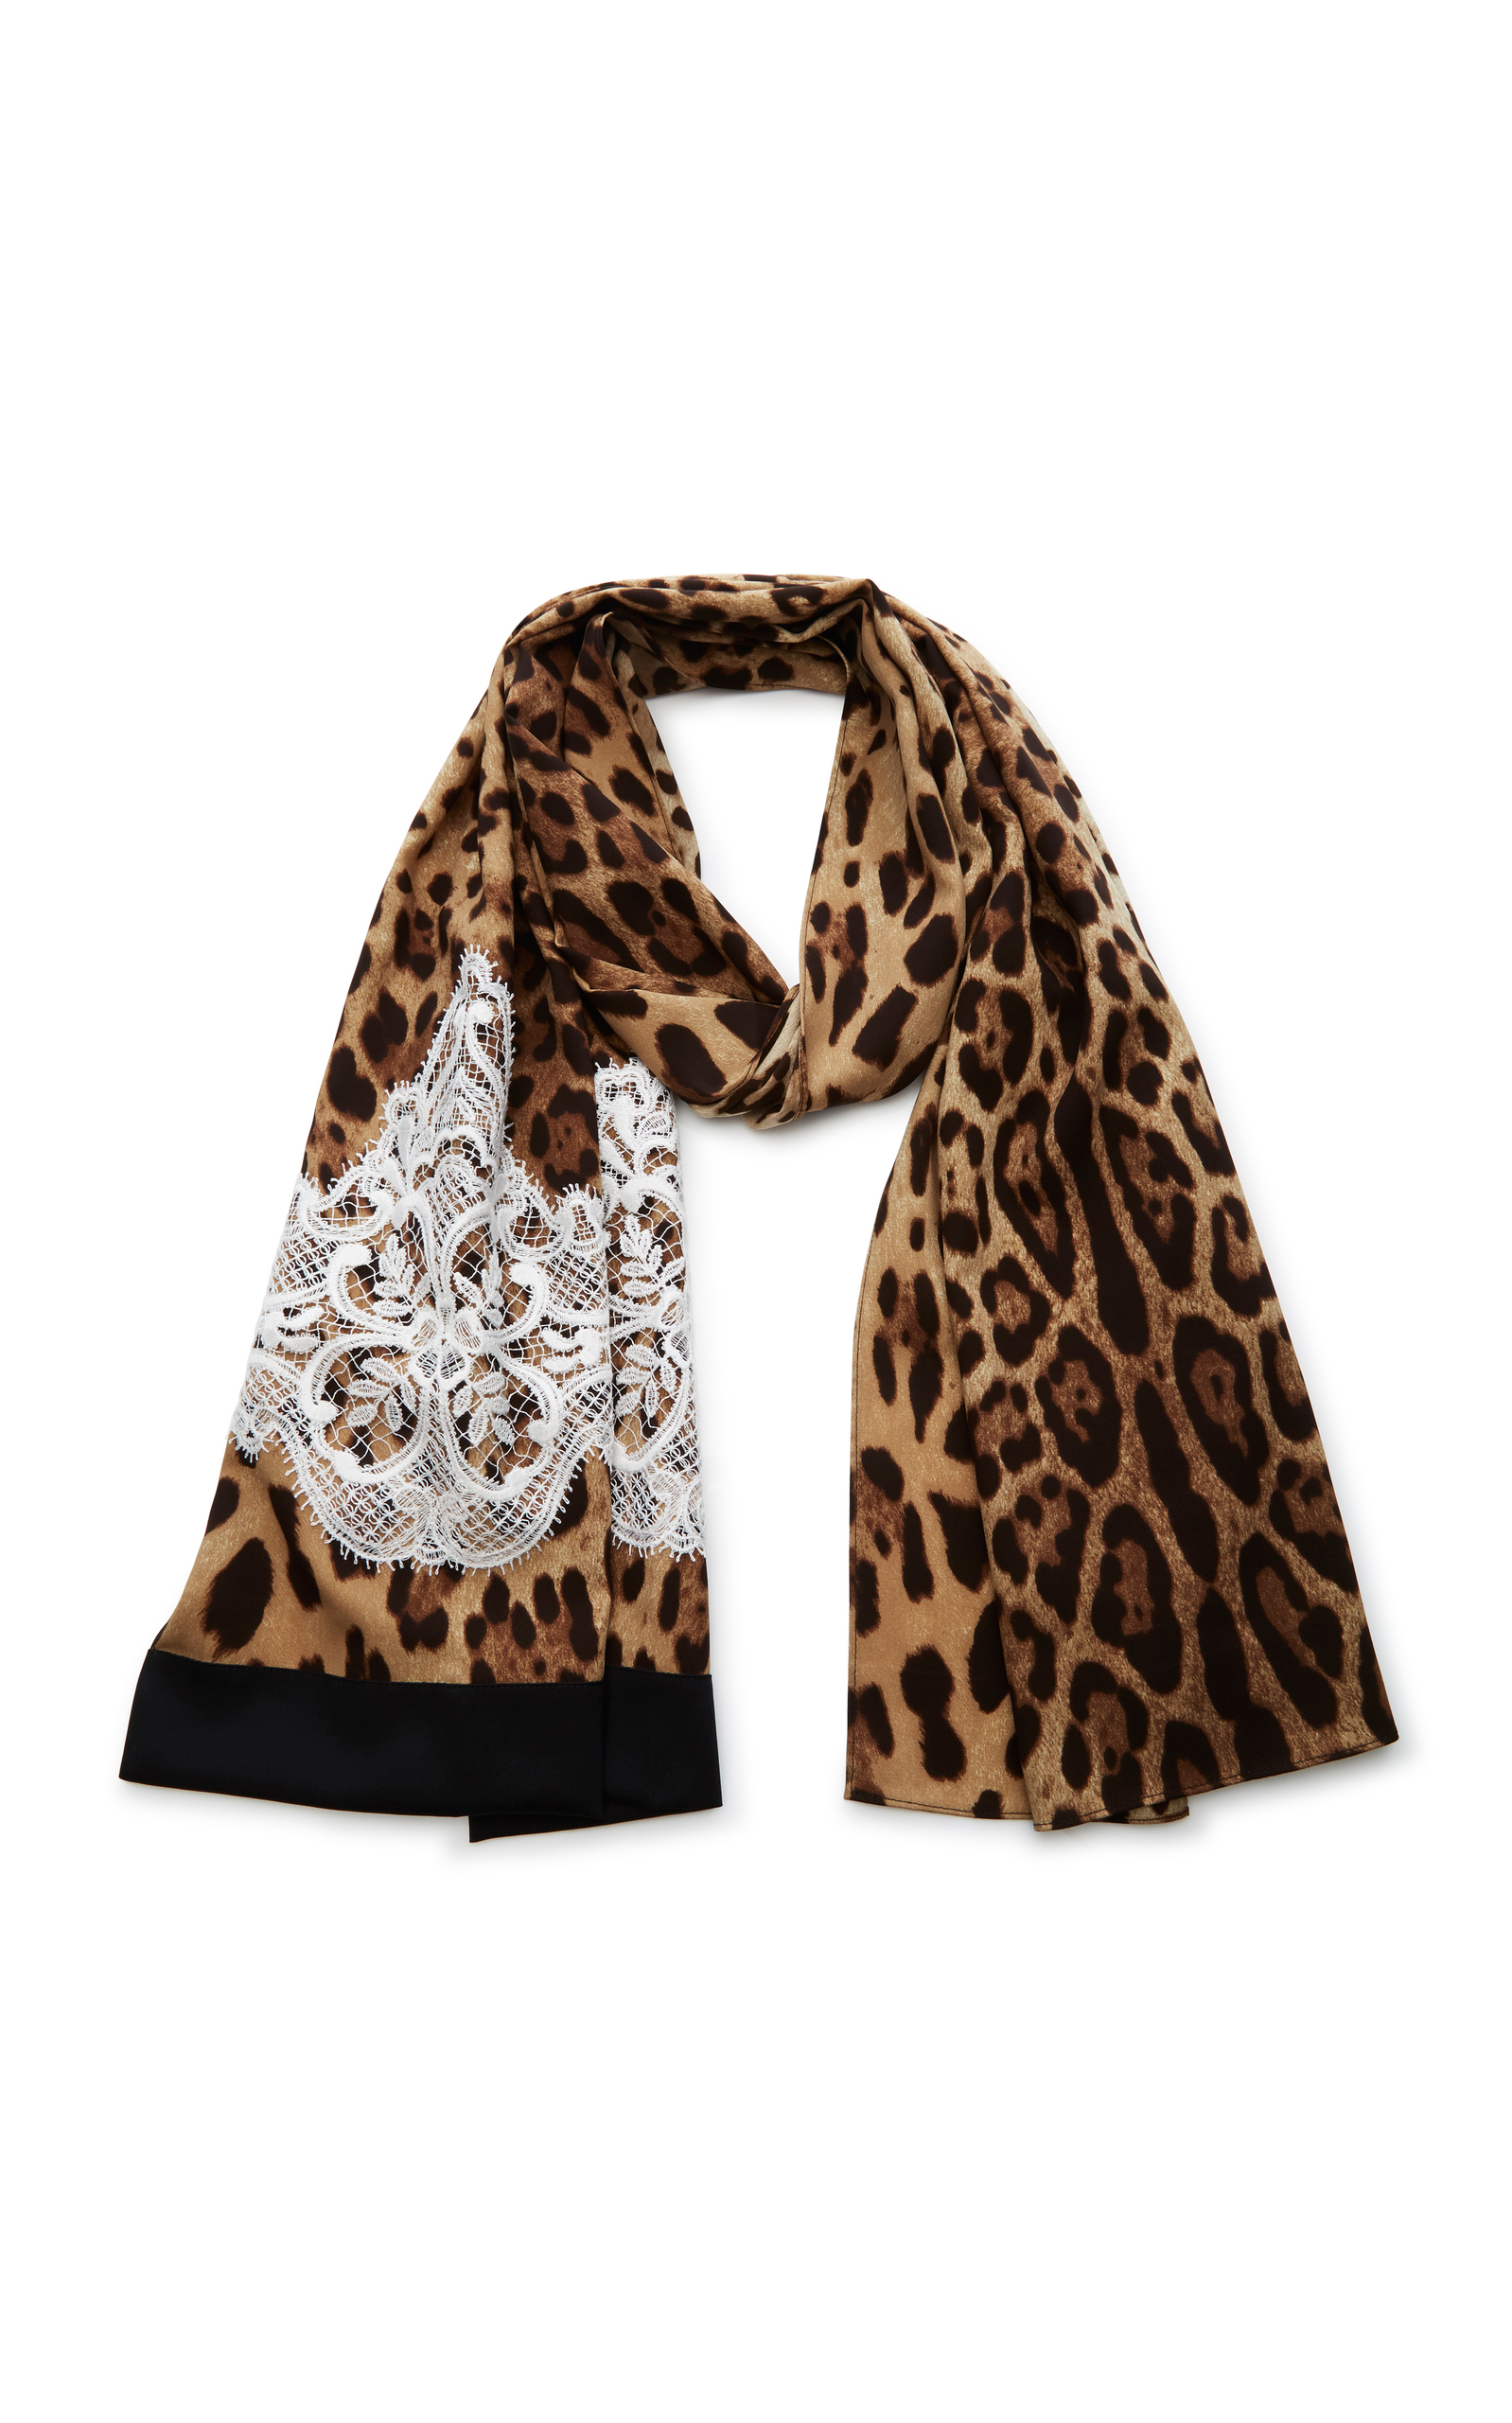 floral and tiger print scarf - Multicolour Dolce & Gabbana ZpjZi2